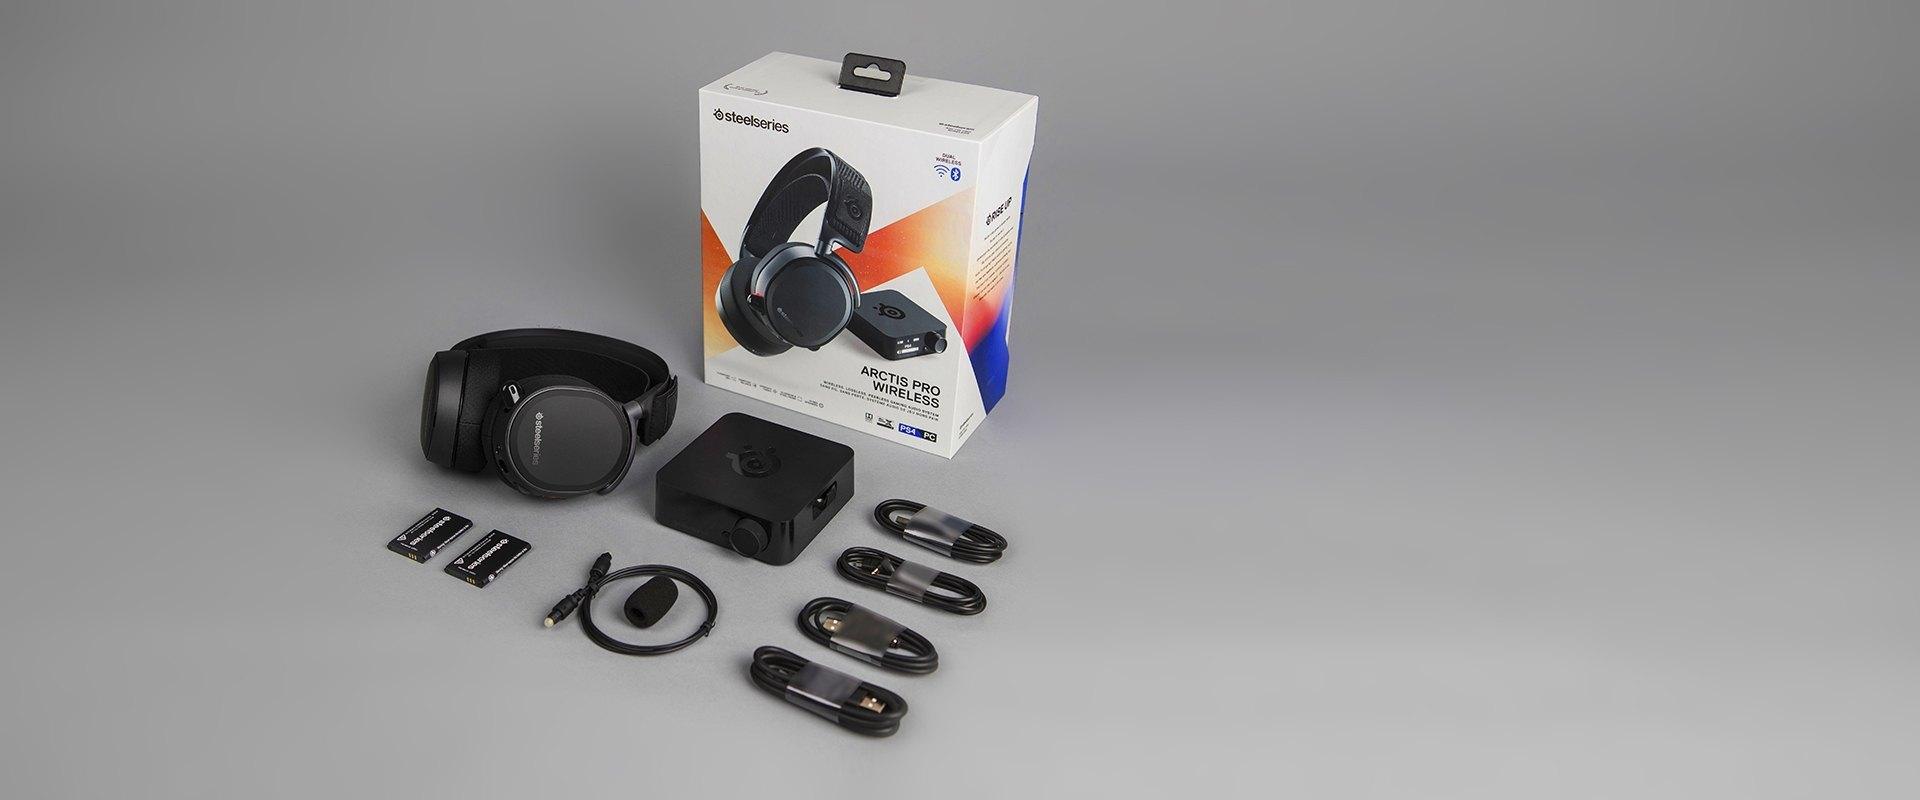 The exterior packaging and box contents for the Arctis Pro -  Hi-res Profesyonel Gamer Kulaklık Wireless